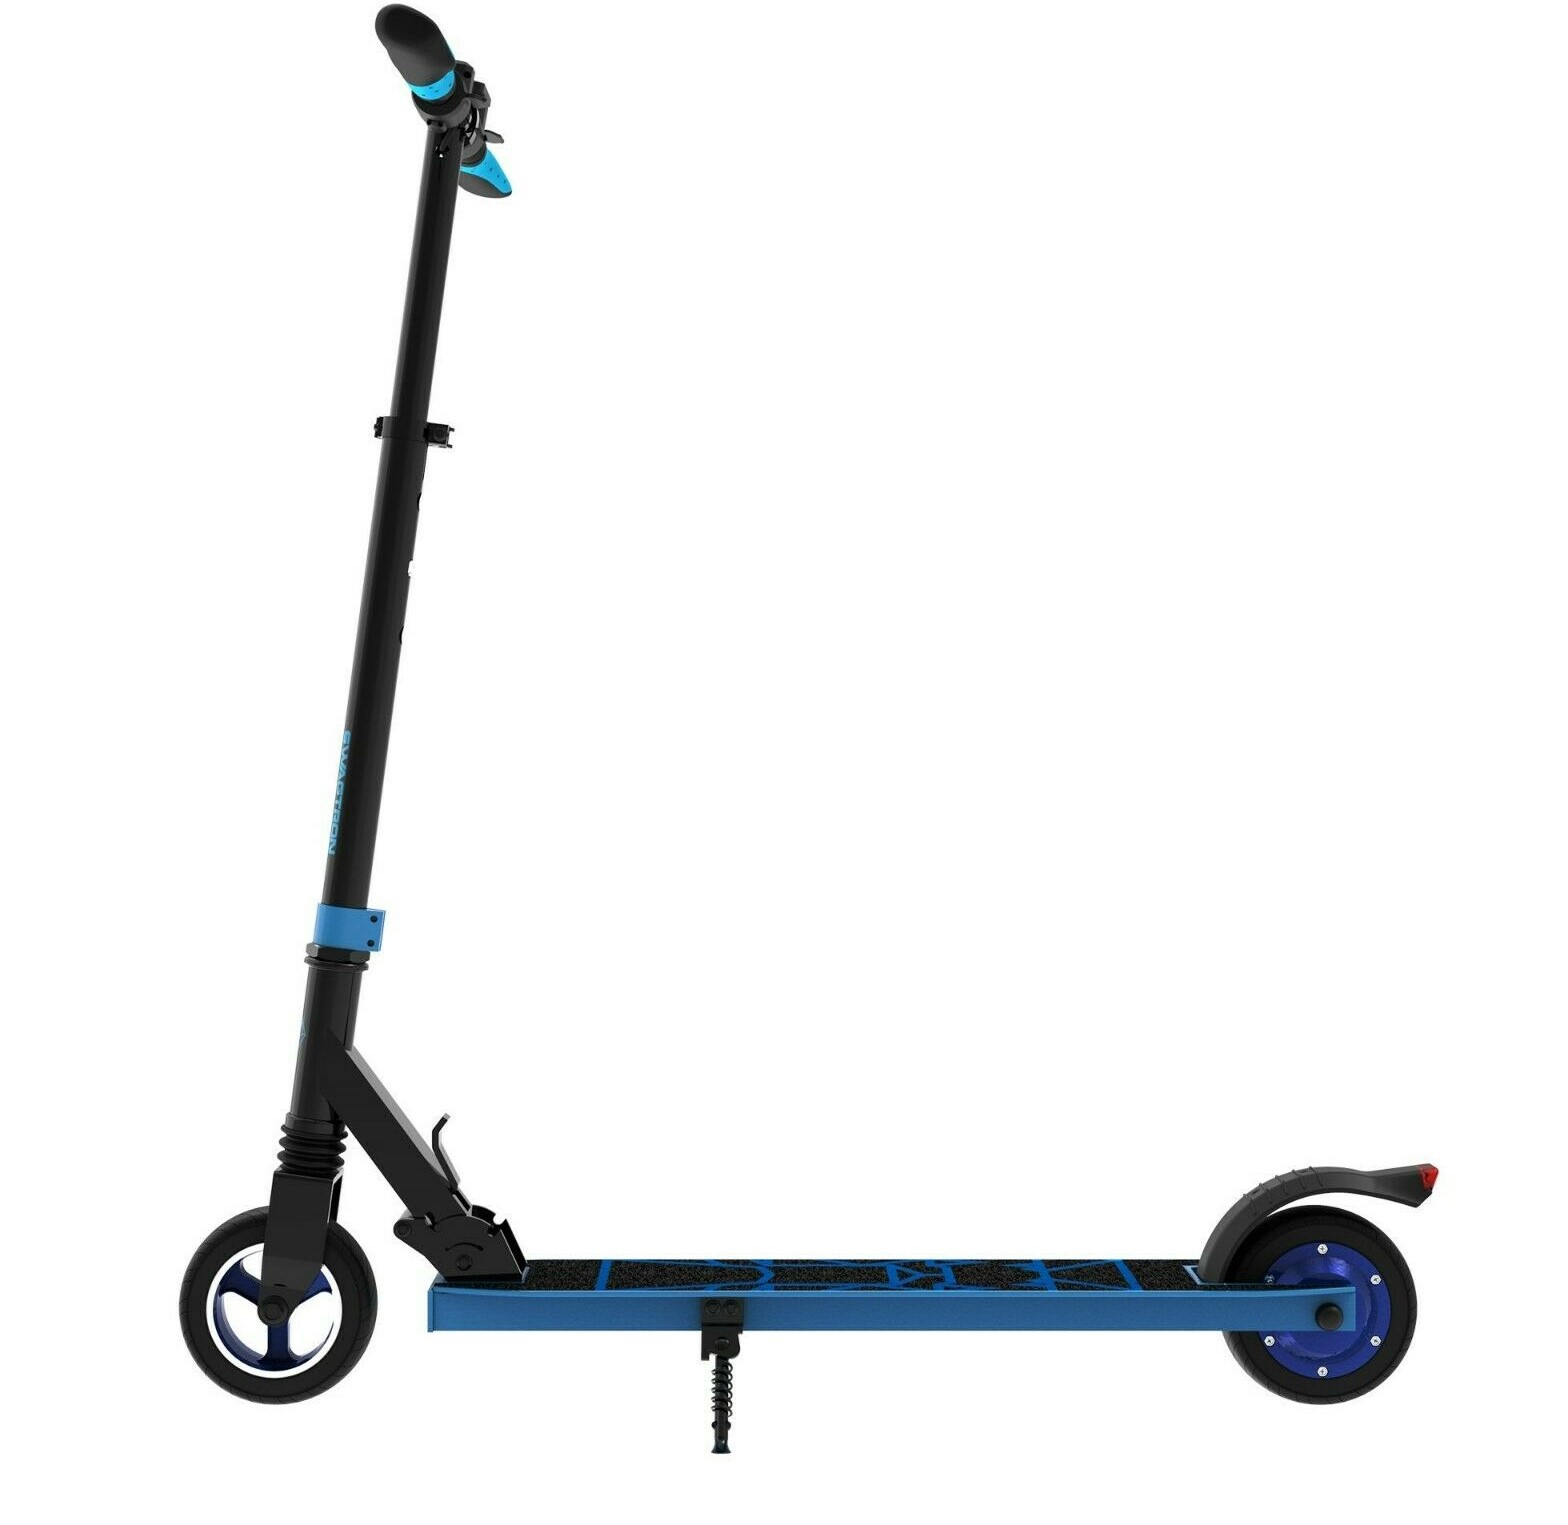 swagger 8 electric scooter